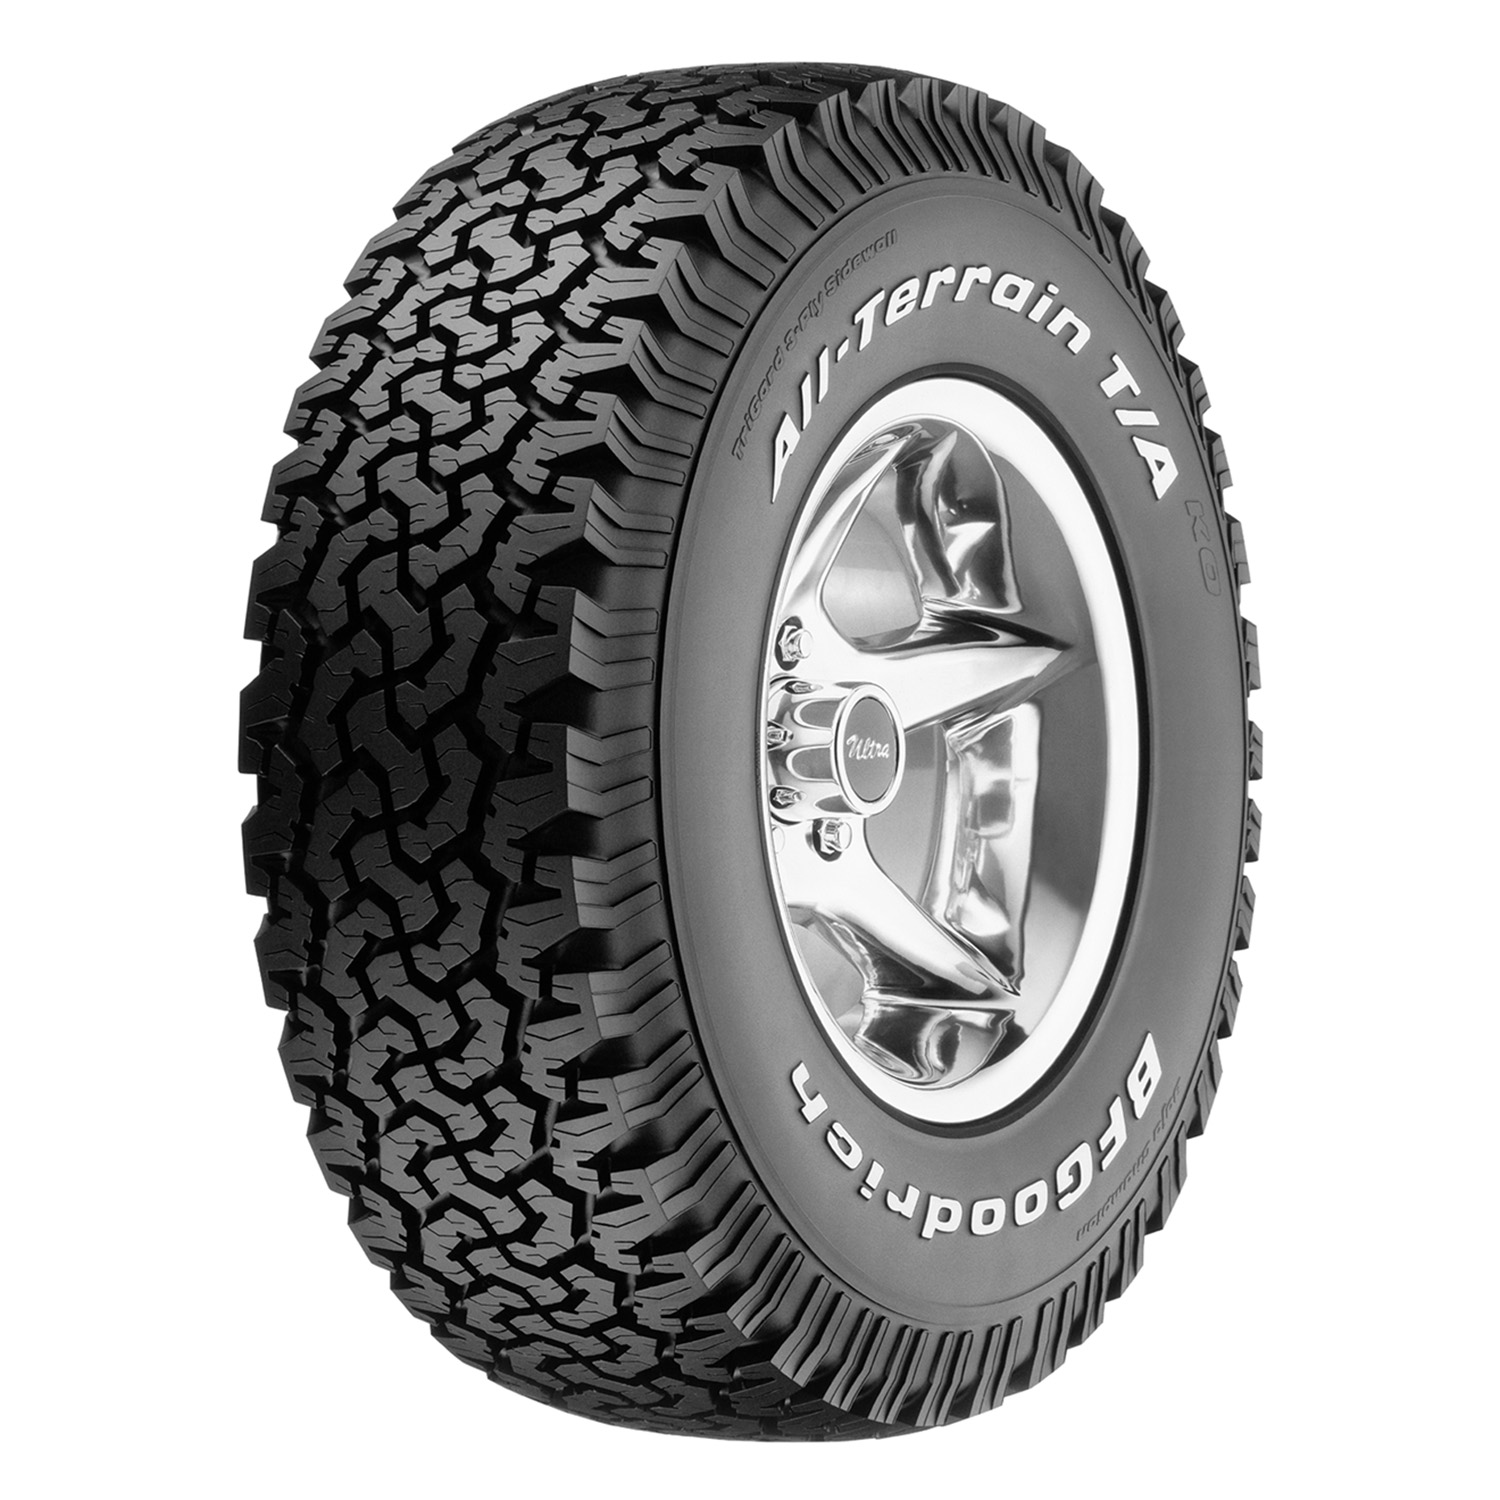 Anvelopa Vara  All-Terrain T/A Ko2 225/70R16 102/99R